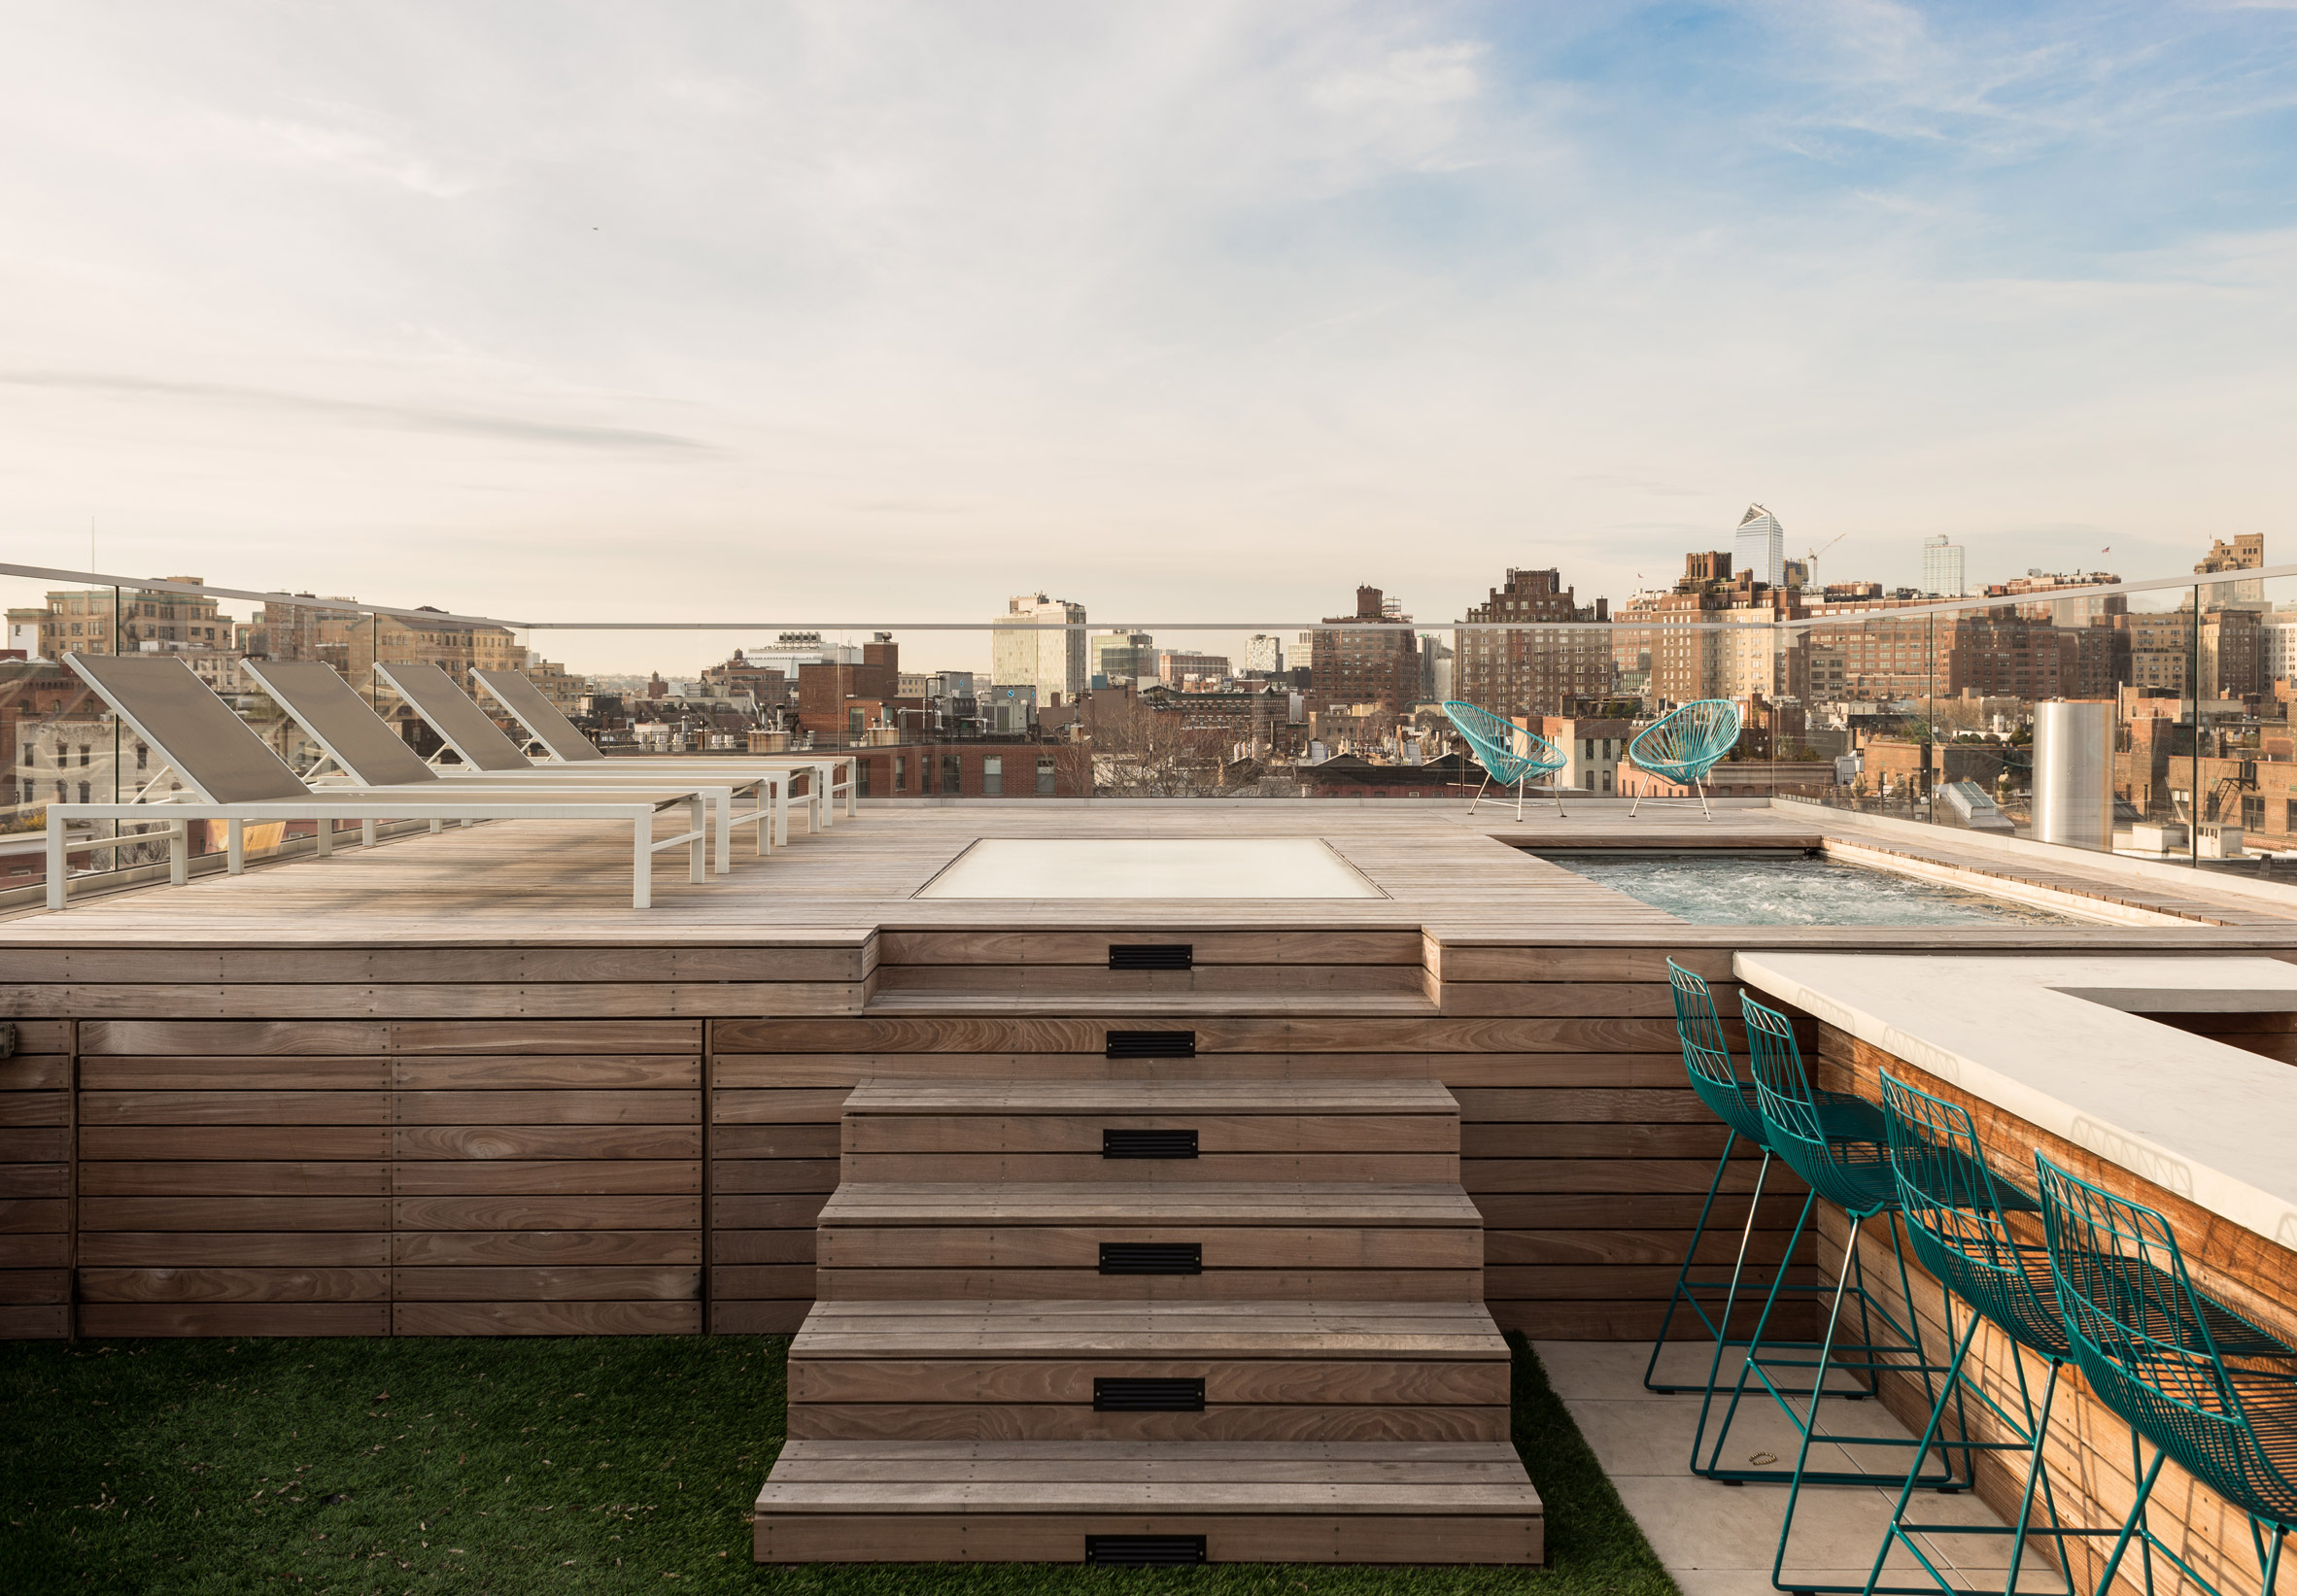 west-village-penthouse-tbd-renovations-interiors-new-york-city-usa_dezeen_2364_col_60.jpg